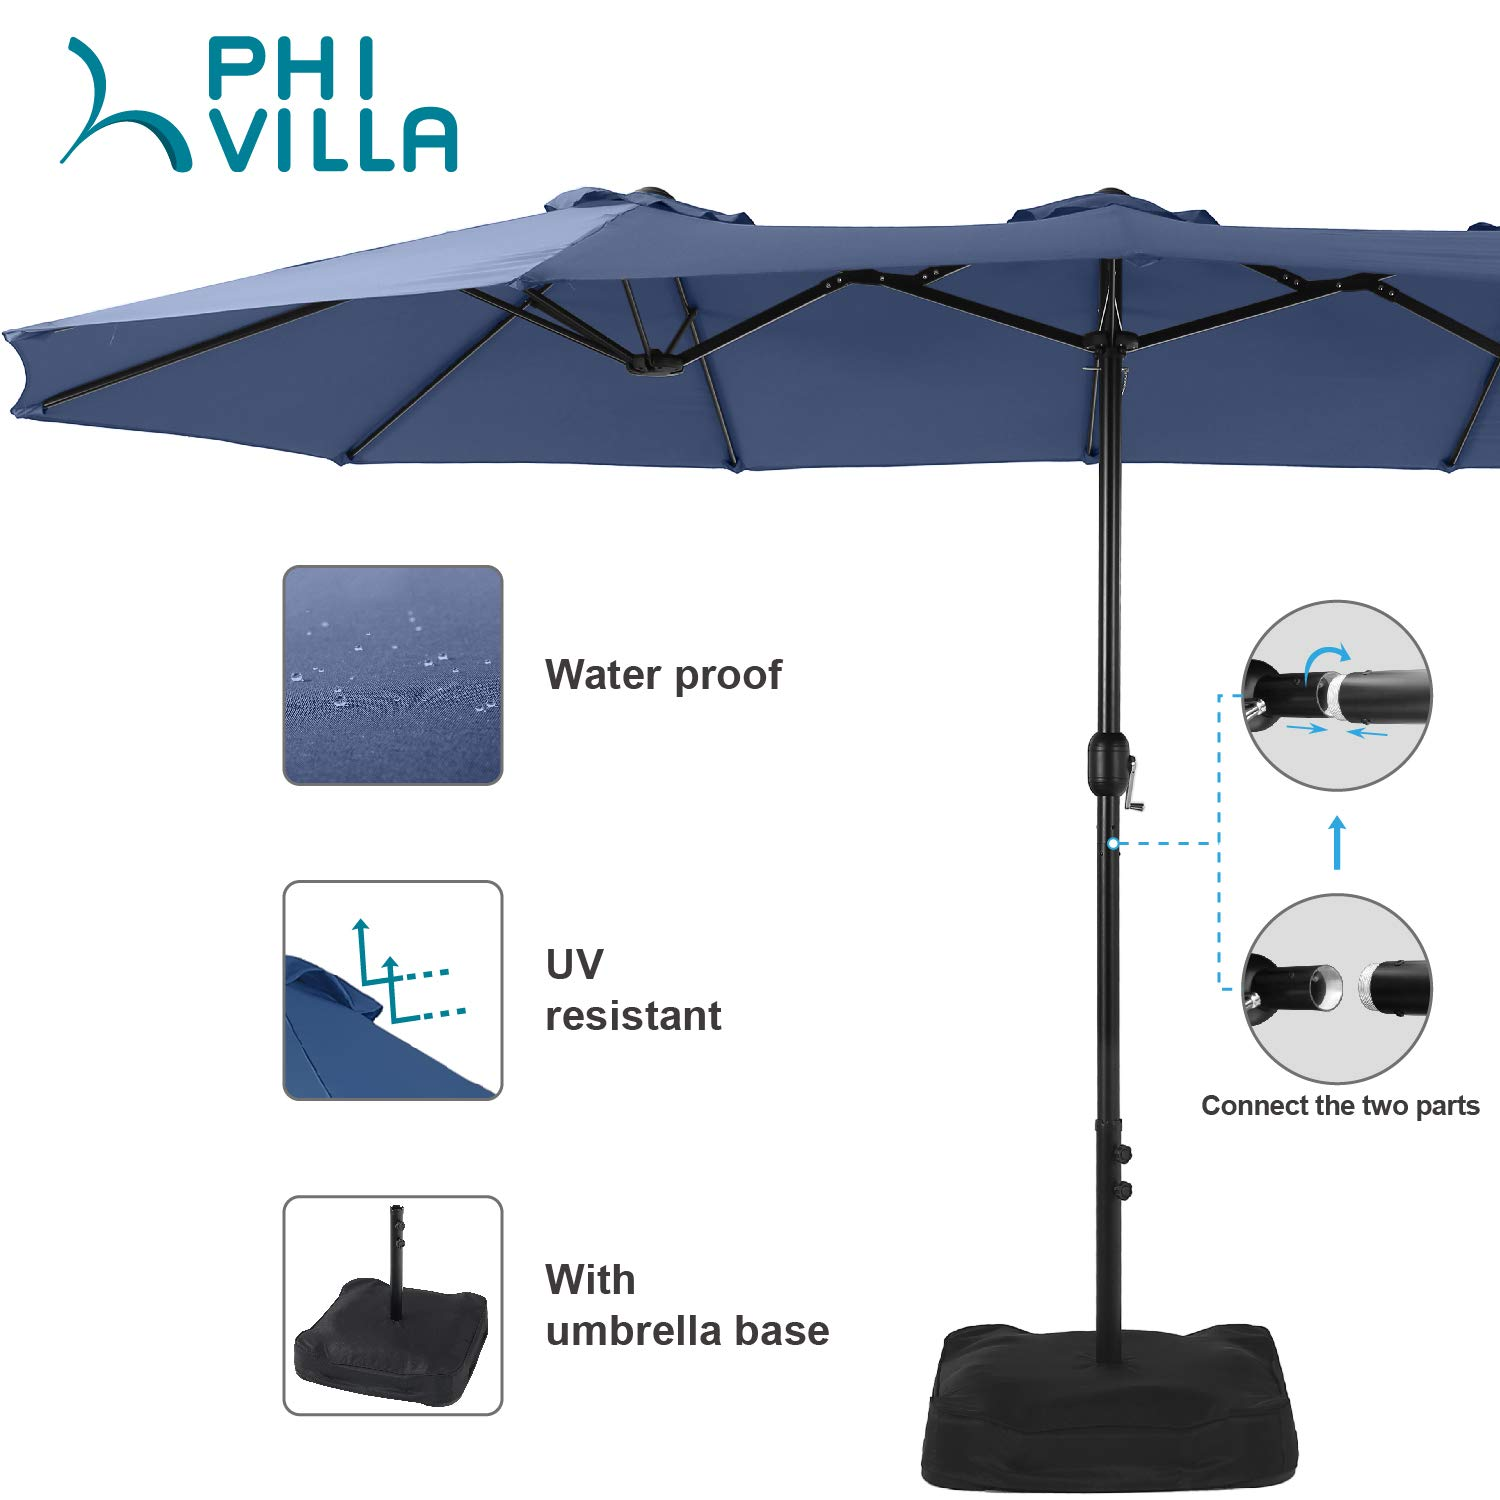 PHI VILLA 15ft Patio Umbrella Double-Sided Outdoor Market Extra Large Umbrella with Crank, Umbrella Base Included Blue